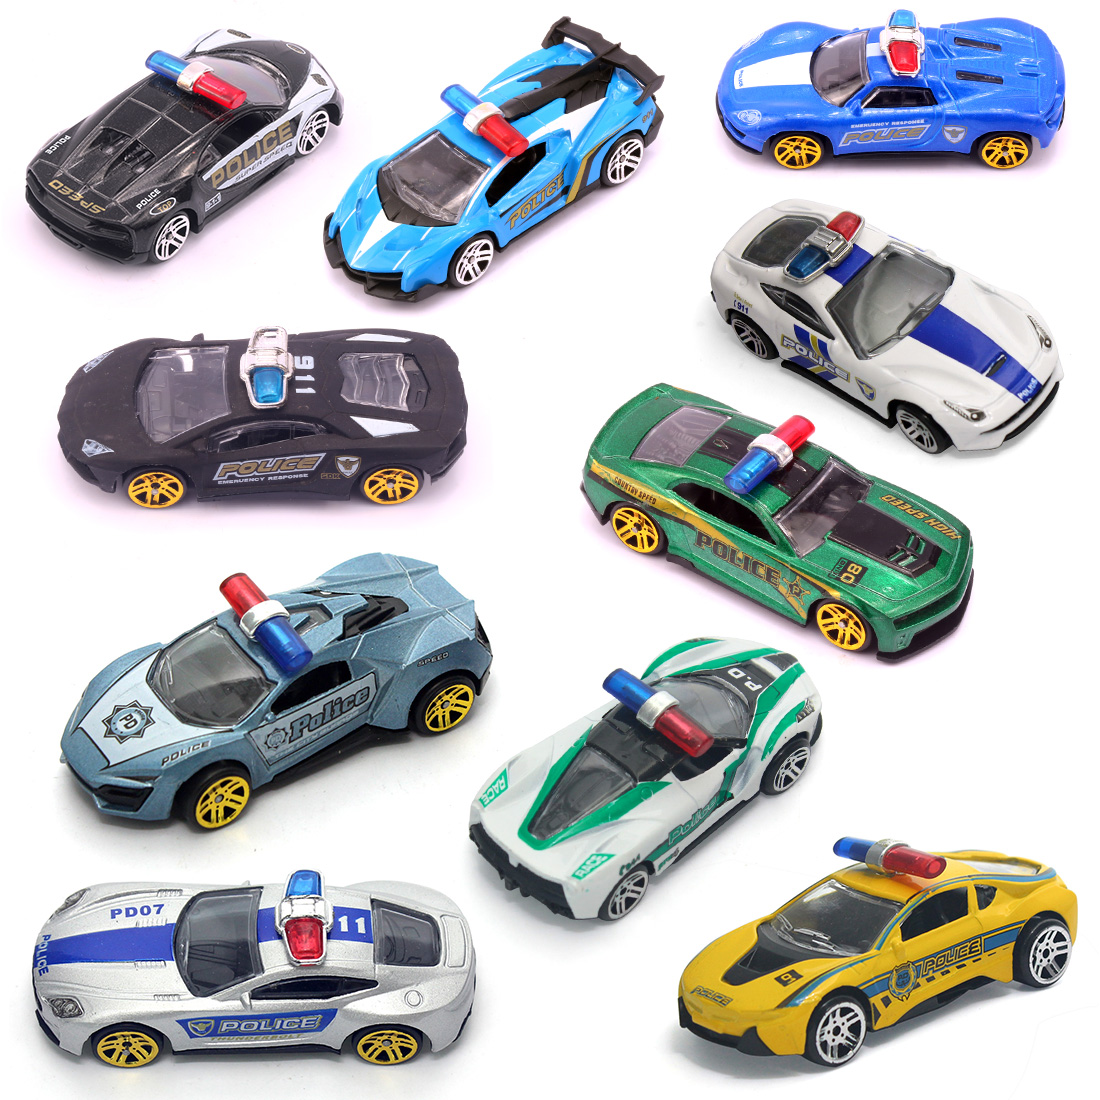 Us 0 99 Feichao Colorful 1 50 Alloy Sliding Police Car Metal Toy